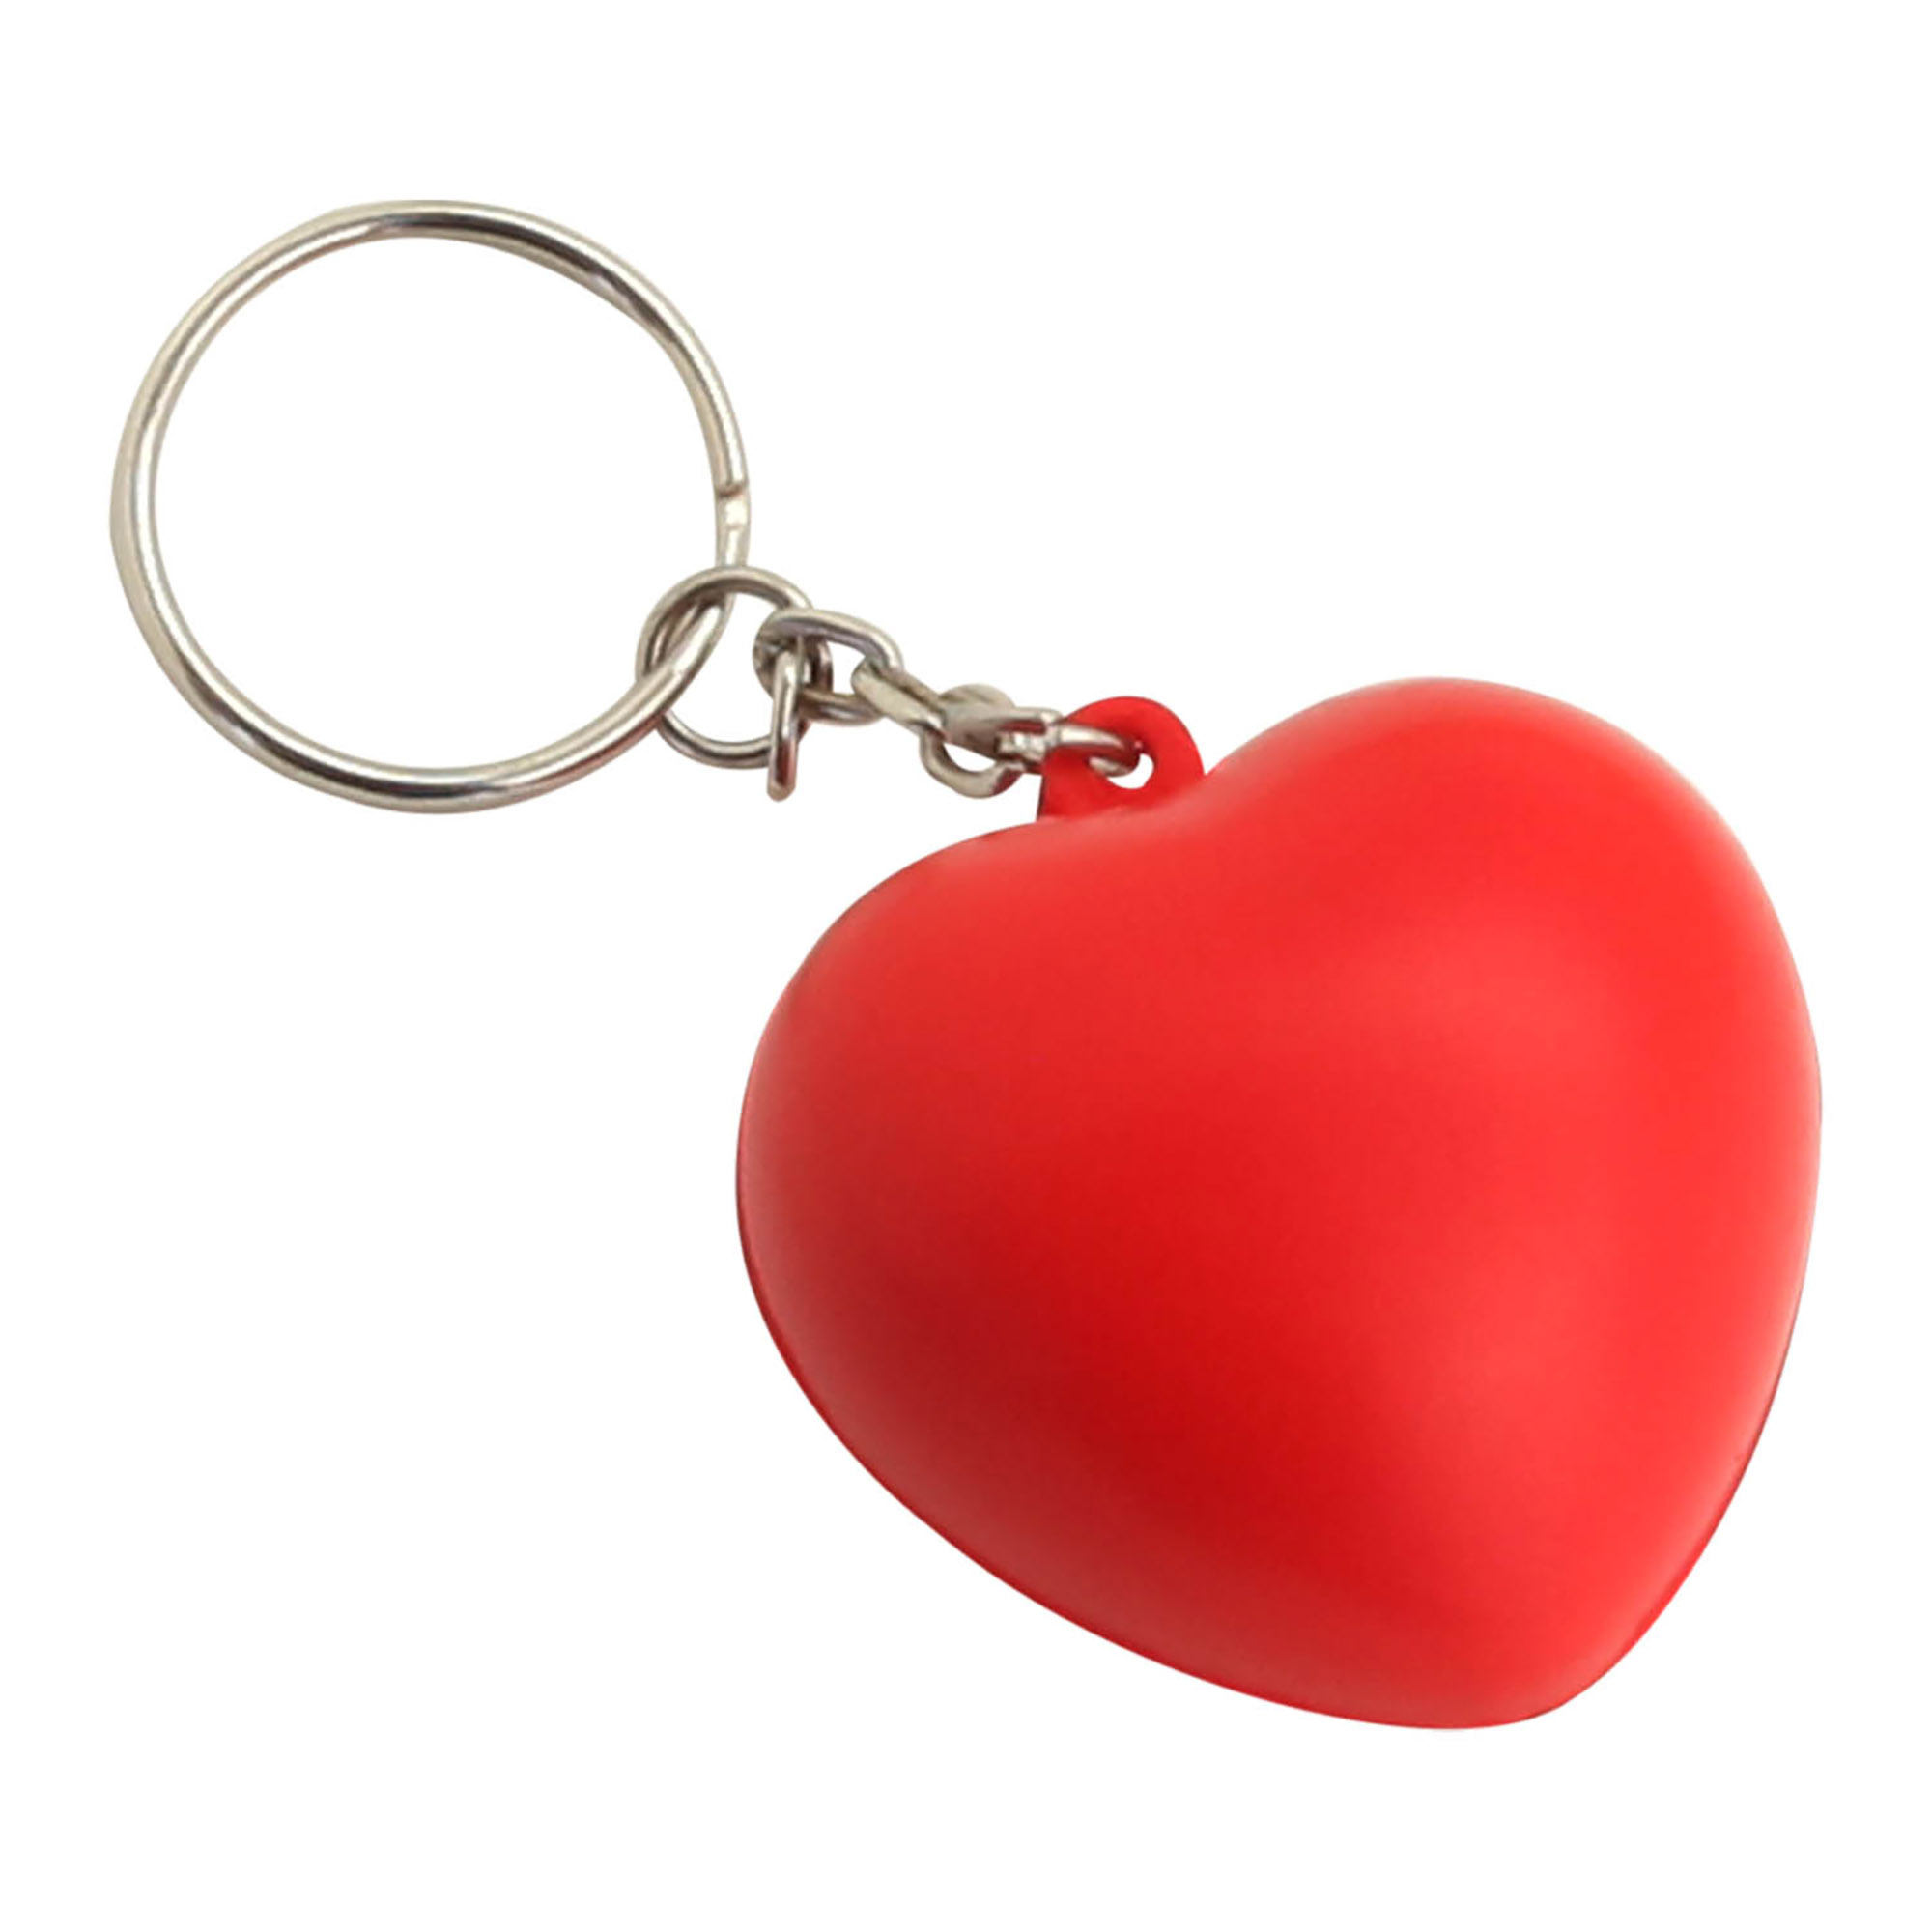 STRESS HEART KEY RING - 1 Colour Print, From $0.57